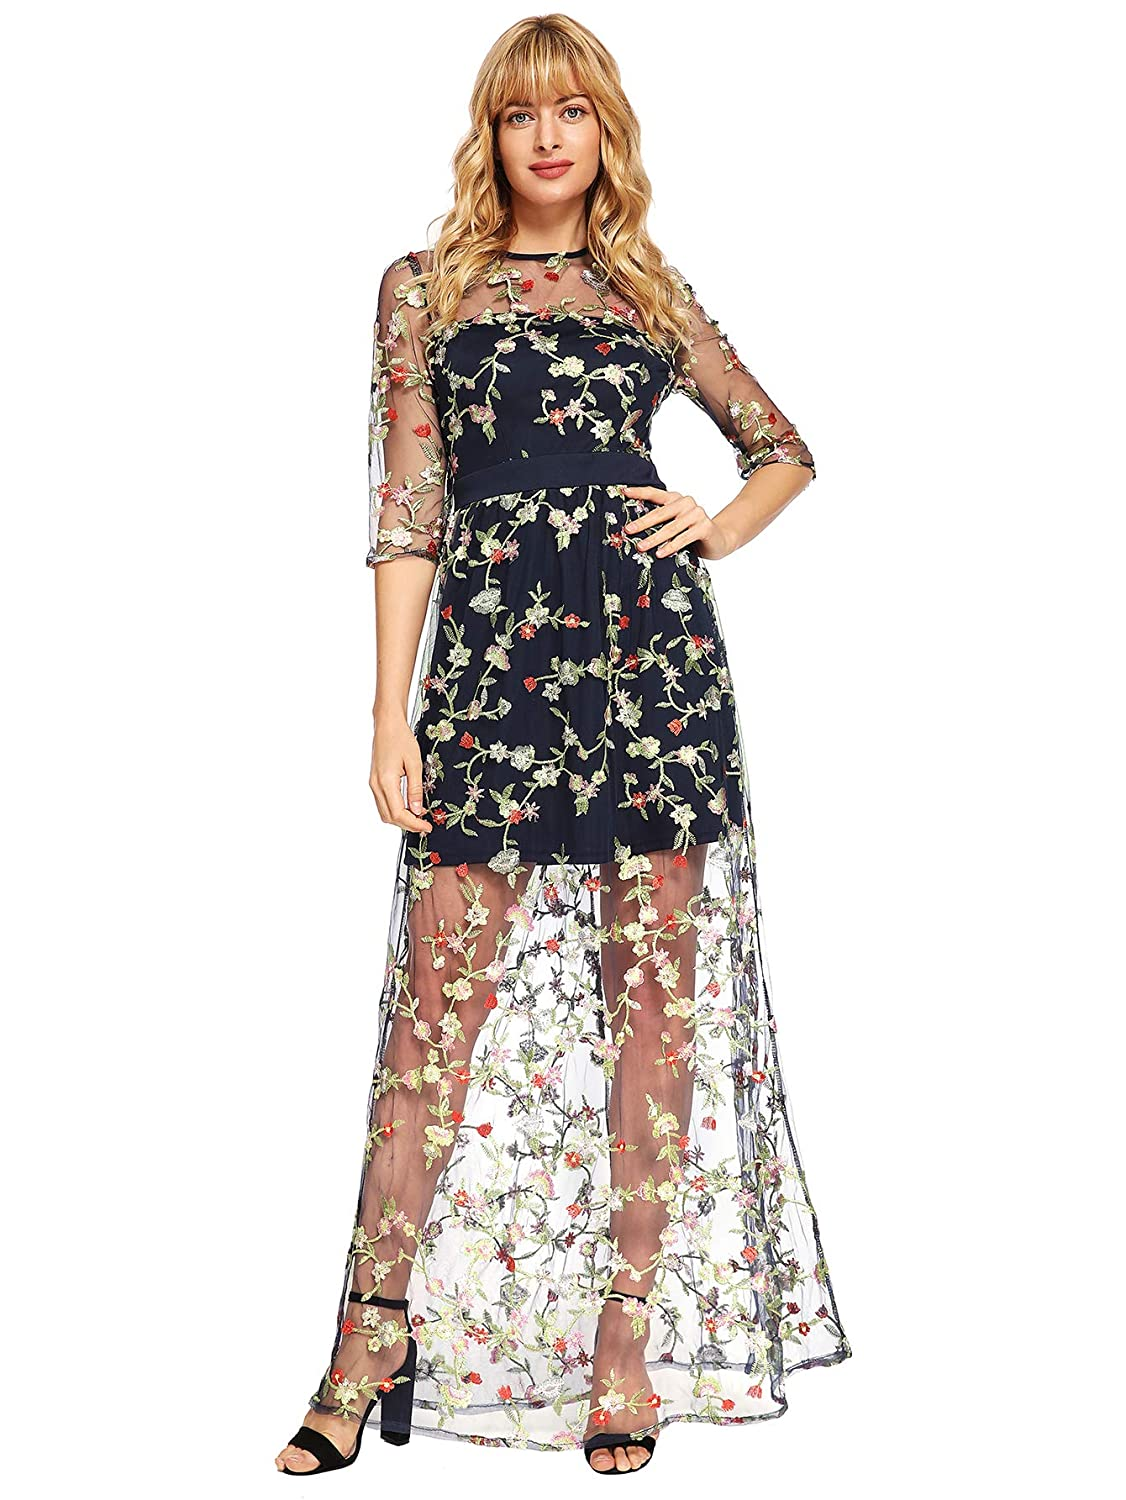 aca26ae7573b5 DIDK Women's A Line Floral Embroidery Mesh Sheer Evening Cocktail Dress at  Amazon Women's Clothing store: